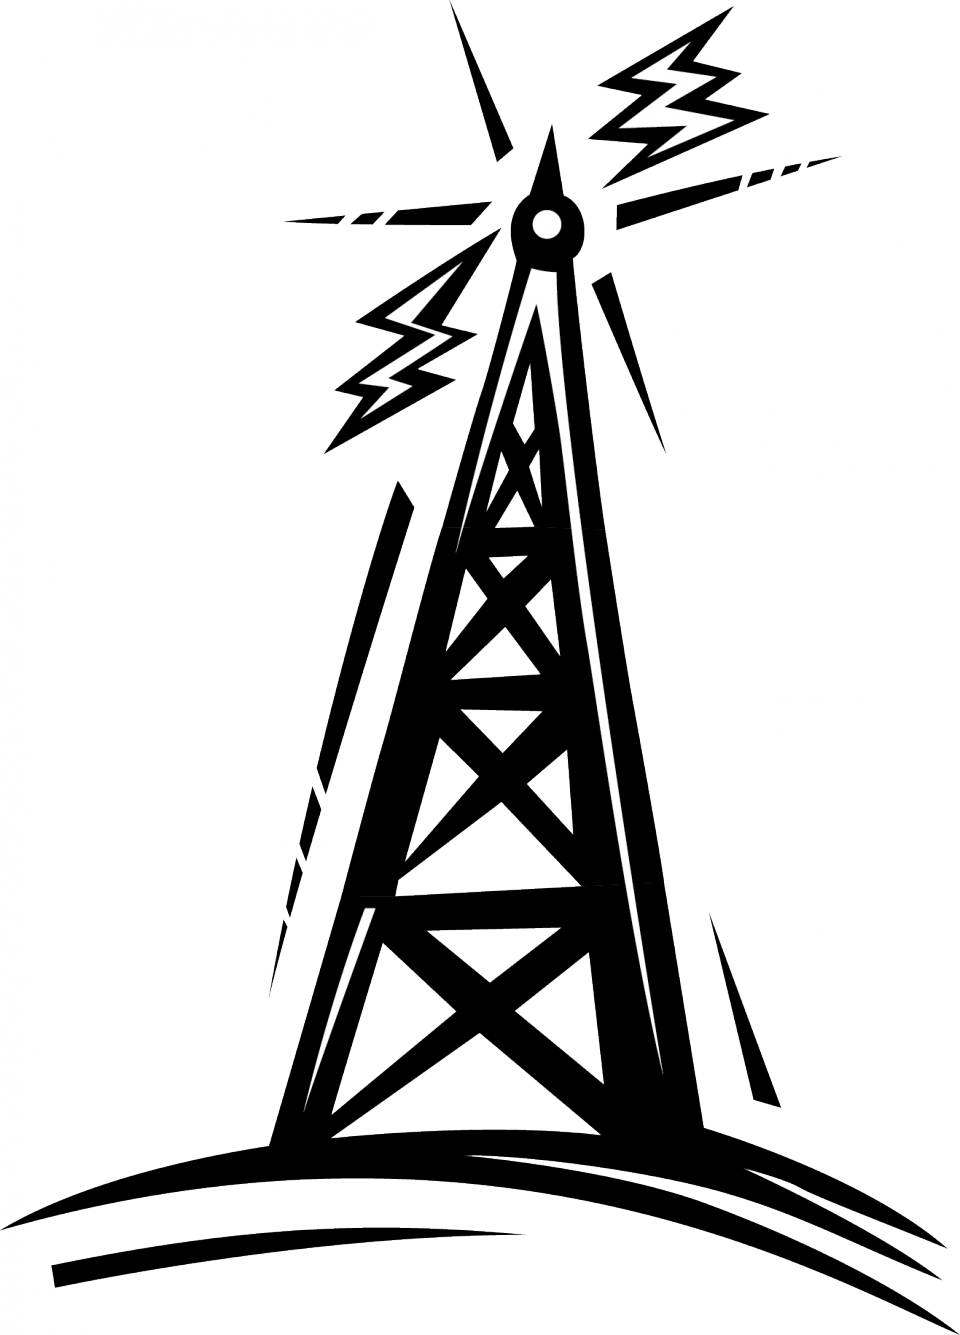 Vintage radio tower clipart jpg royalty free stock Collection of Radio tower clipart | Free download best Radio ... jpg royalty free stock